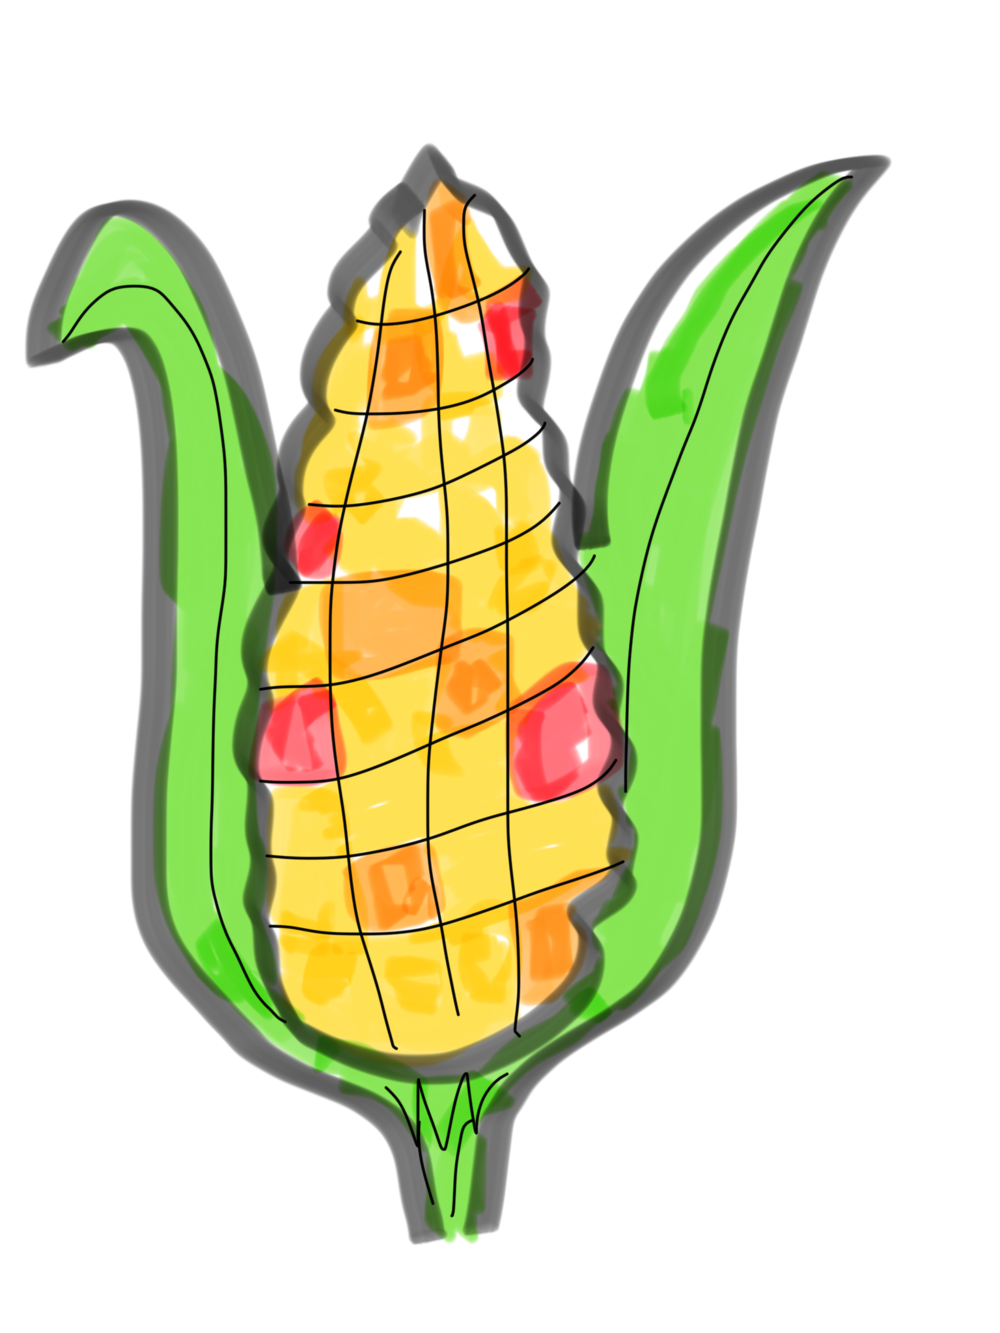 I drew you this corn!